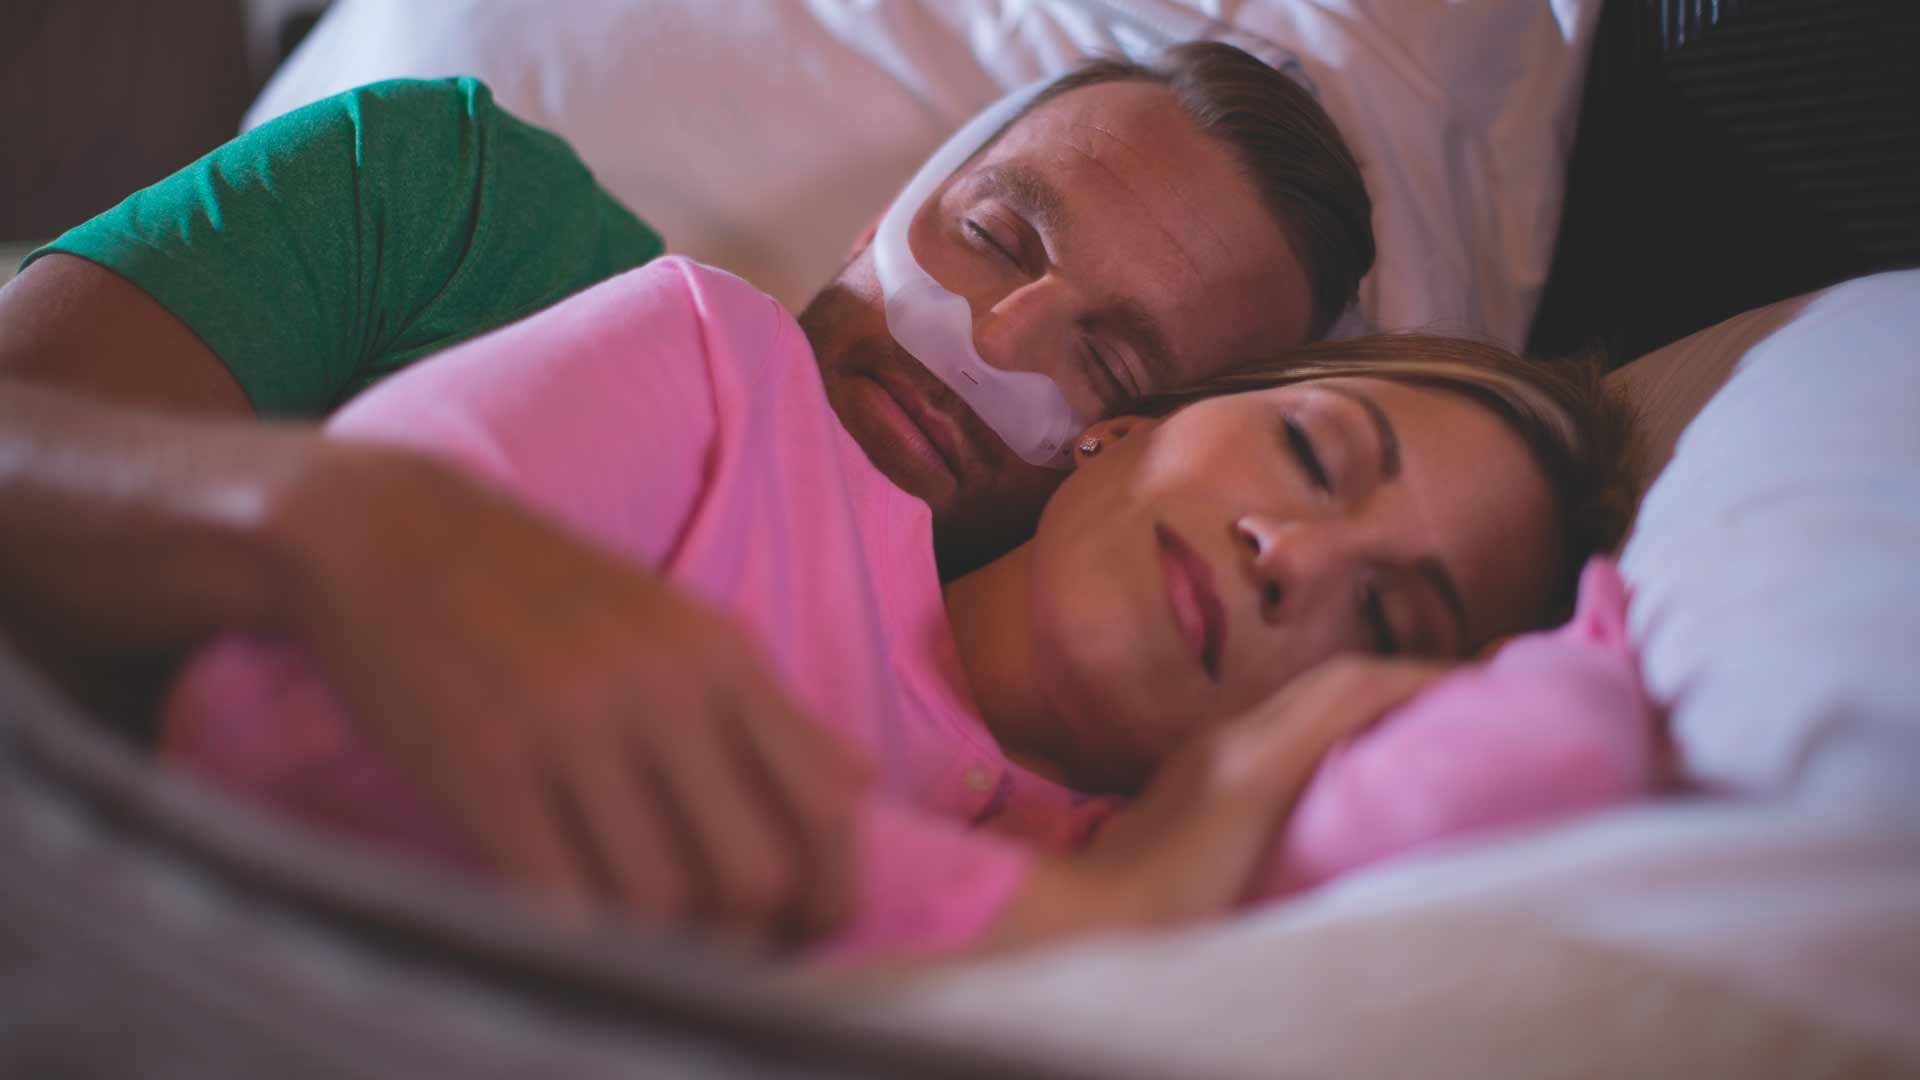 Philips DreamWear Pillow mask